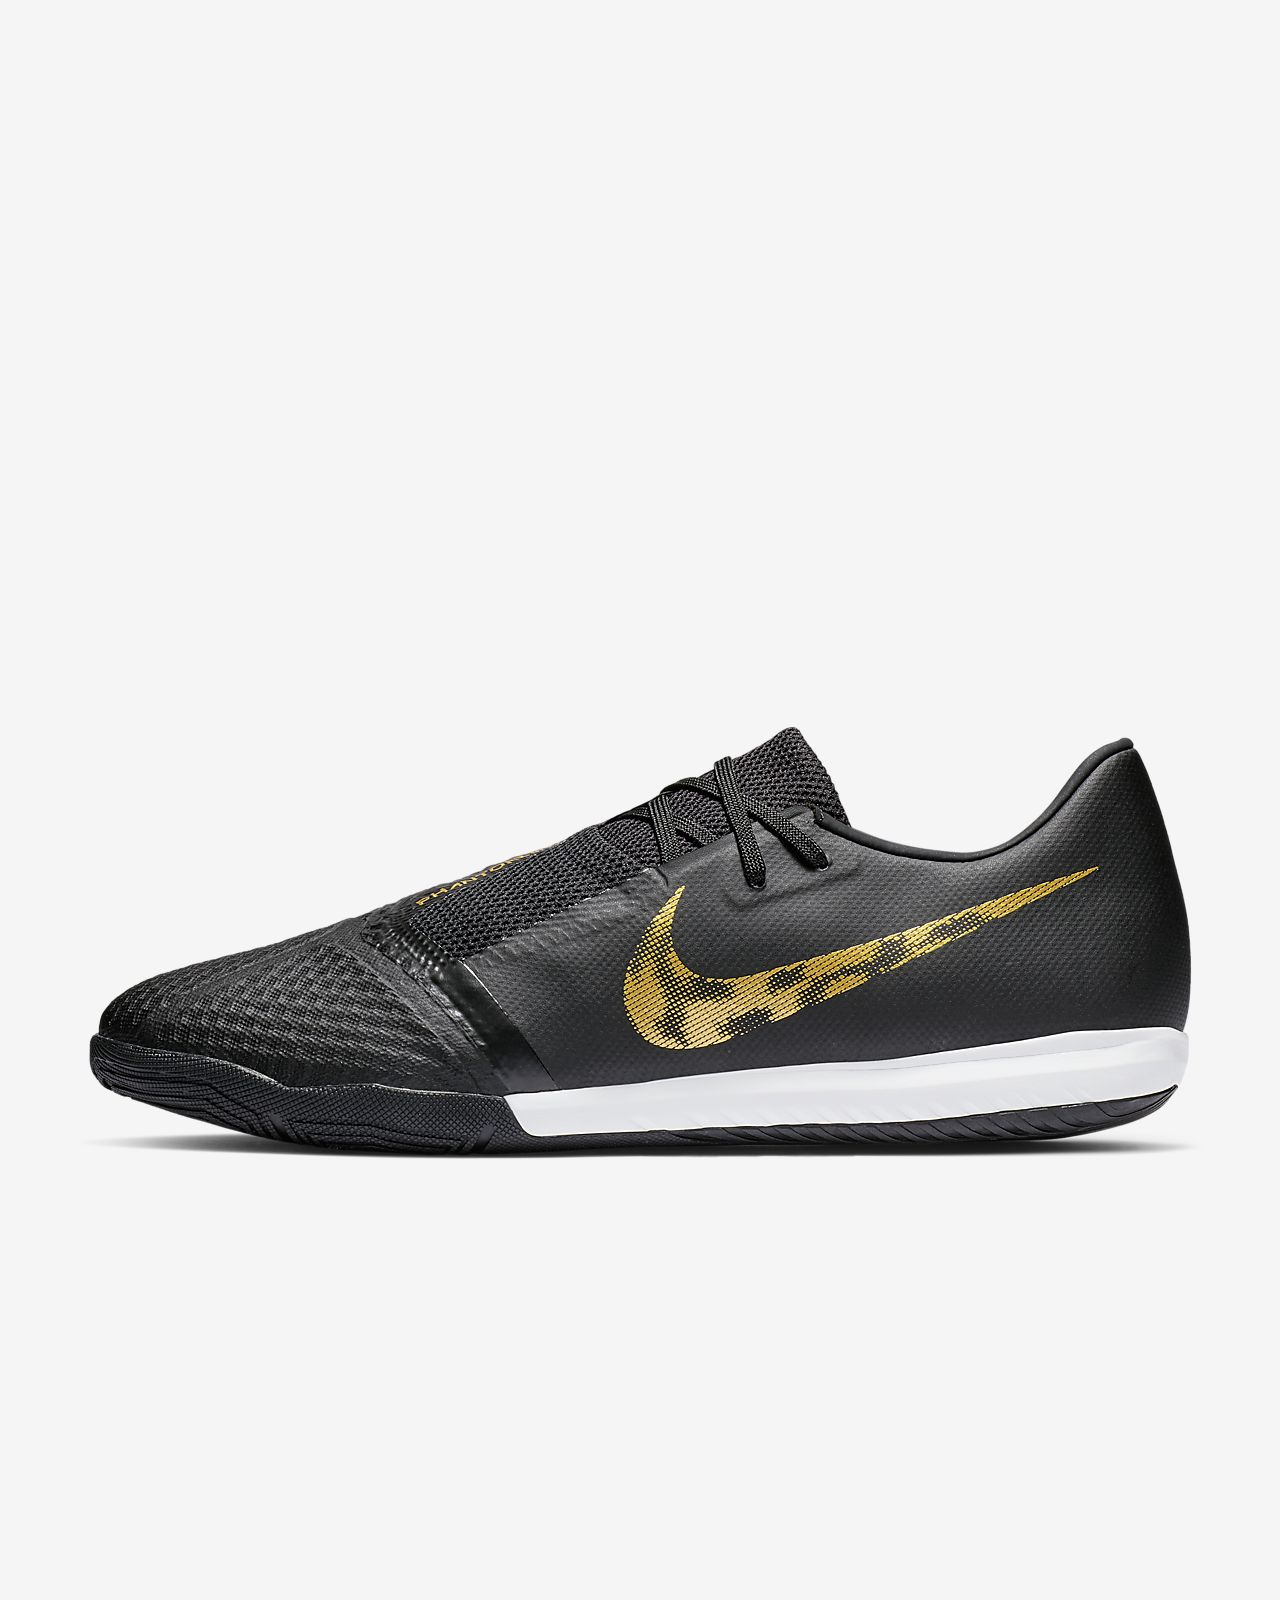 Nike PhantomVNM Academy IC Game Over Indoor/Court Soccer Cleat